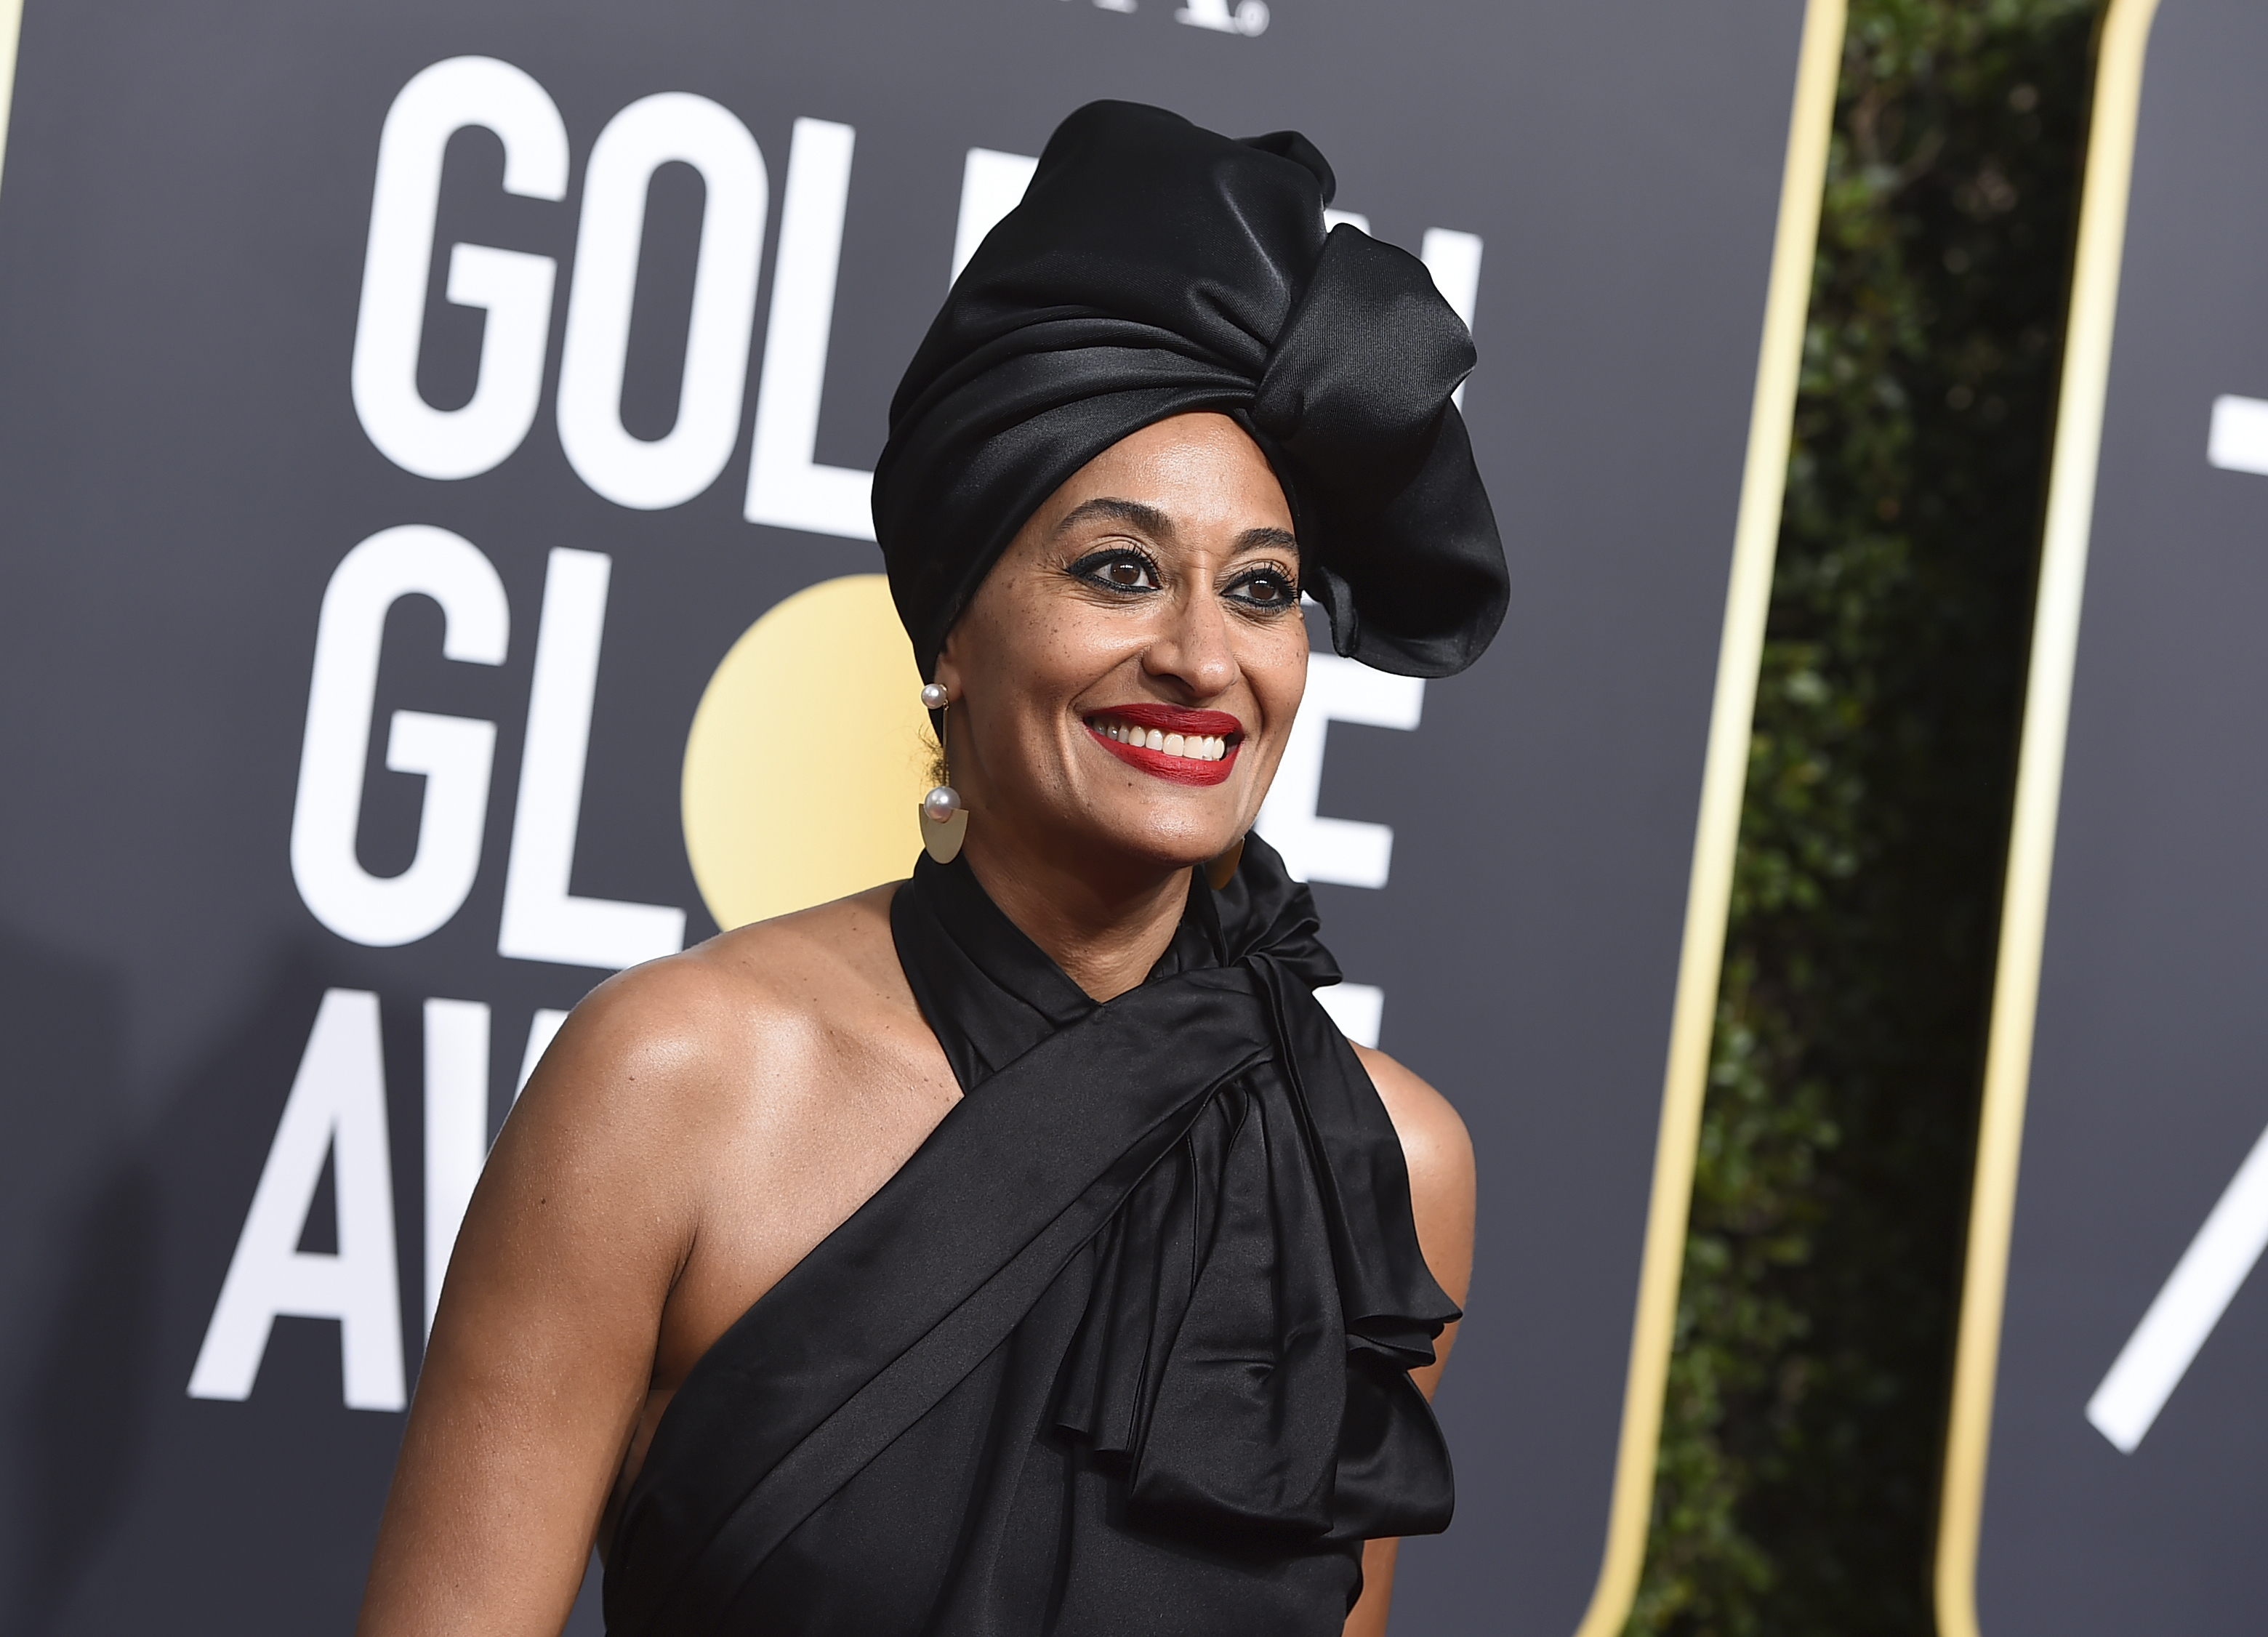 <div class='meta'><div class='origin-logo' data-origin='AP'></div><span class='caption-text' data-credit='Jordan Strauss/Invision/AP'>Tracee Ellis Ross arrives at the 75th annual Golden Globe Awards at the Beverly Hilton Hotel on Sunday, Jan. 7, 2018, in Beverly Hills, Calif.</span></div>